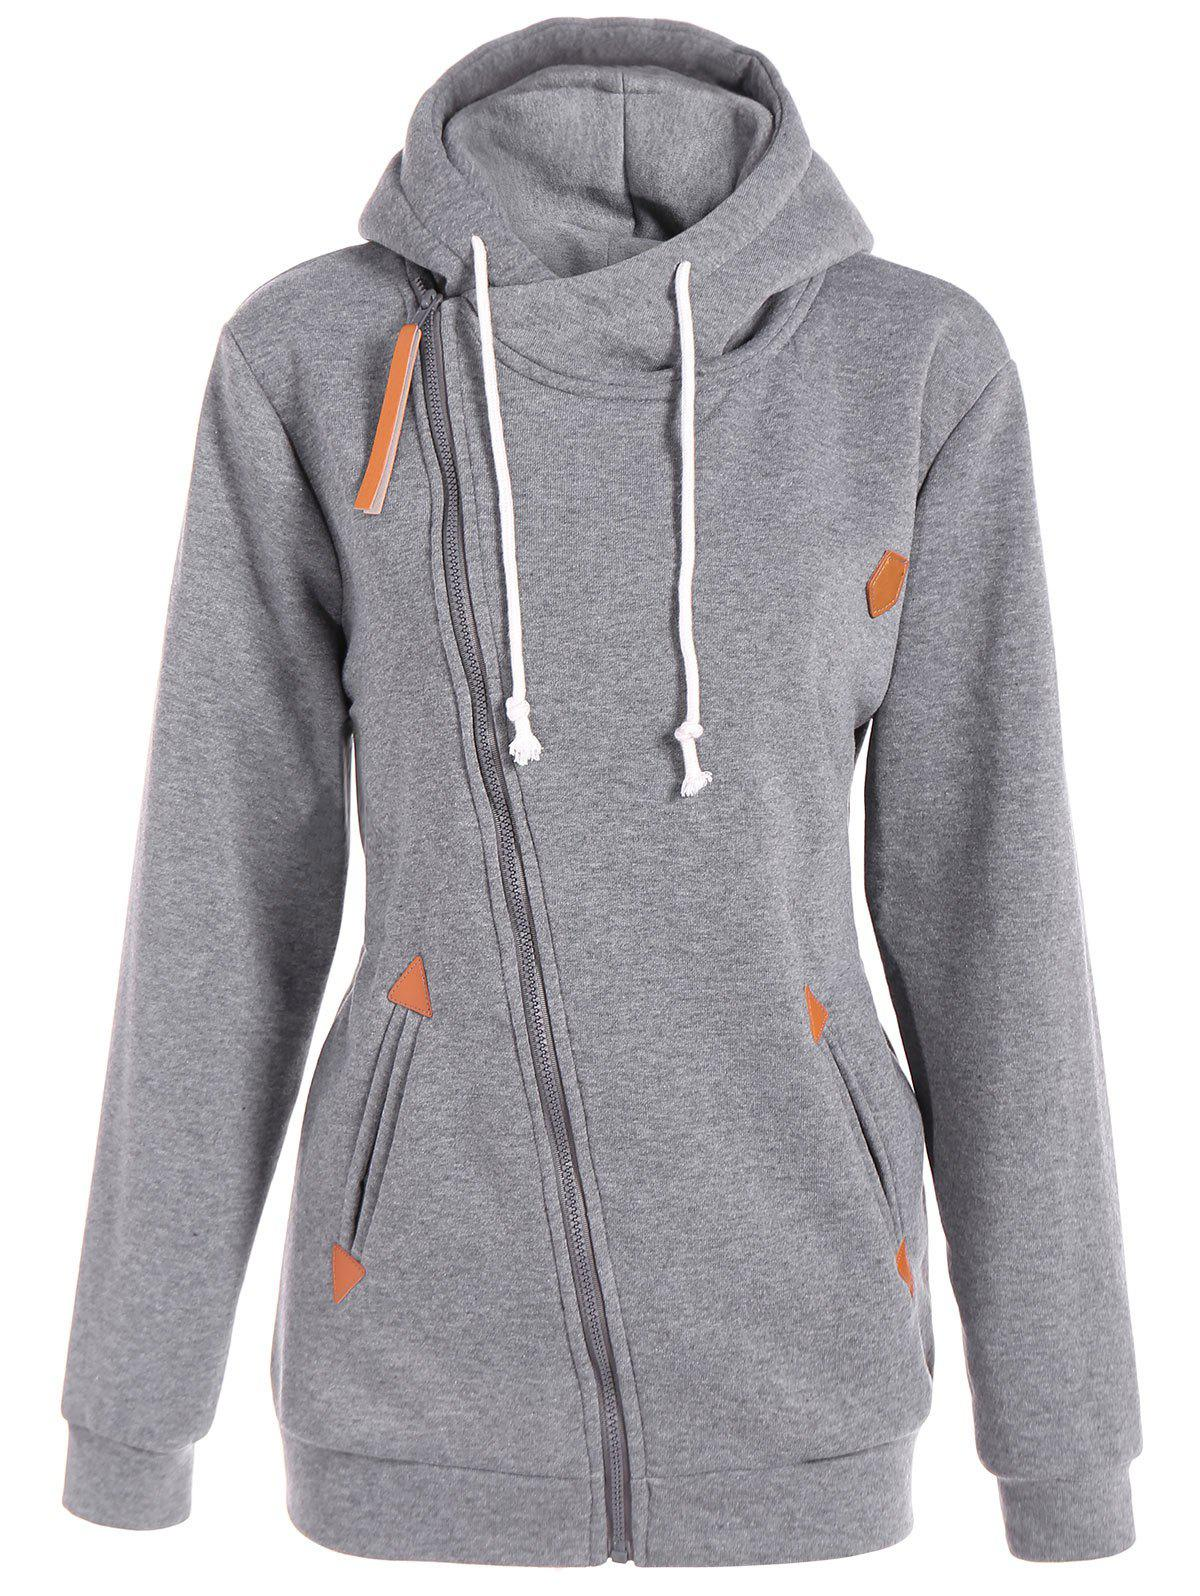 Plus Size Inclined Zipper Drawstring Hoodie - GRAY 2XL